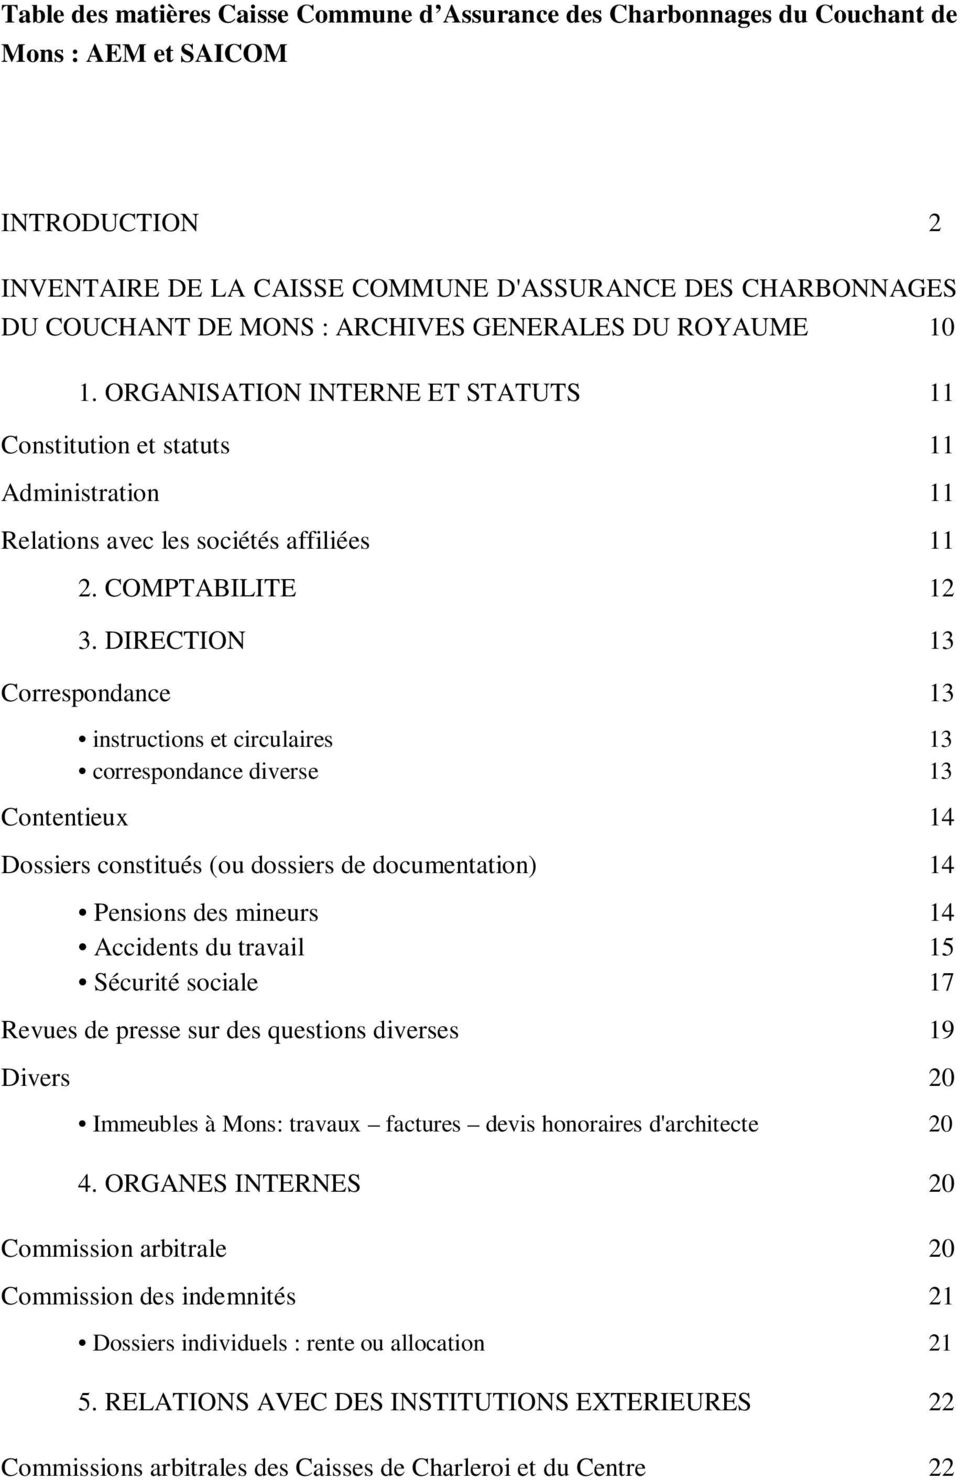 DIRECTION 13 Correspondance 13 instructions et circulaires 13 correspondance diverse 13 Contentieux 14 Dossiers constitués (ou dossiers de documentation) 14 Pensions des mineurs 14 Accidents du